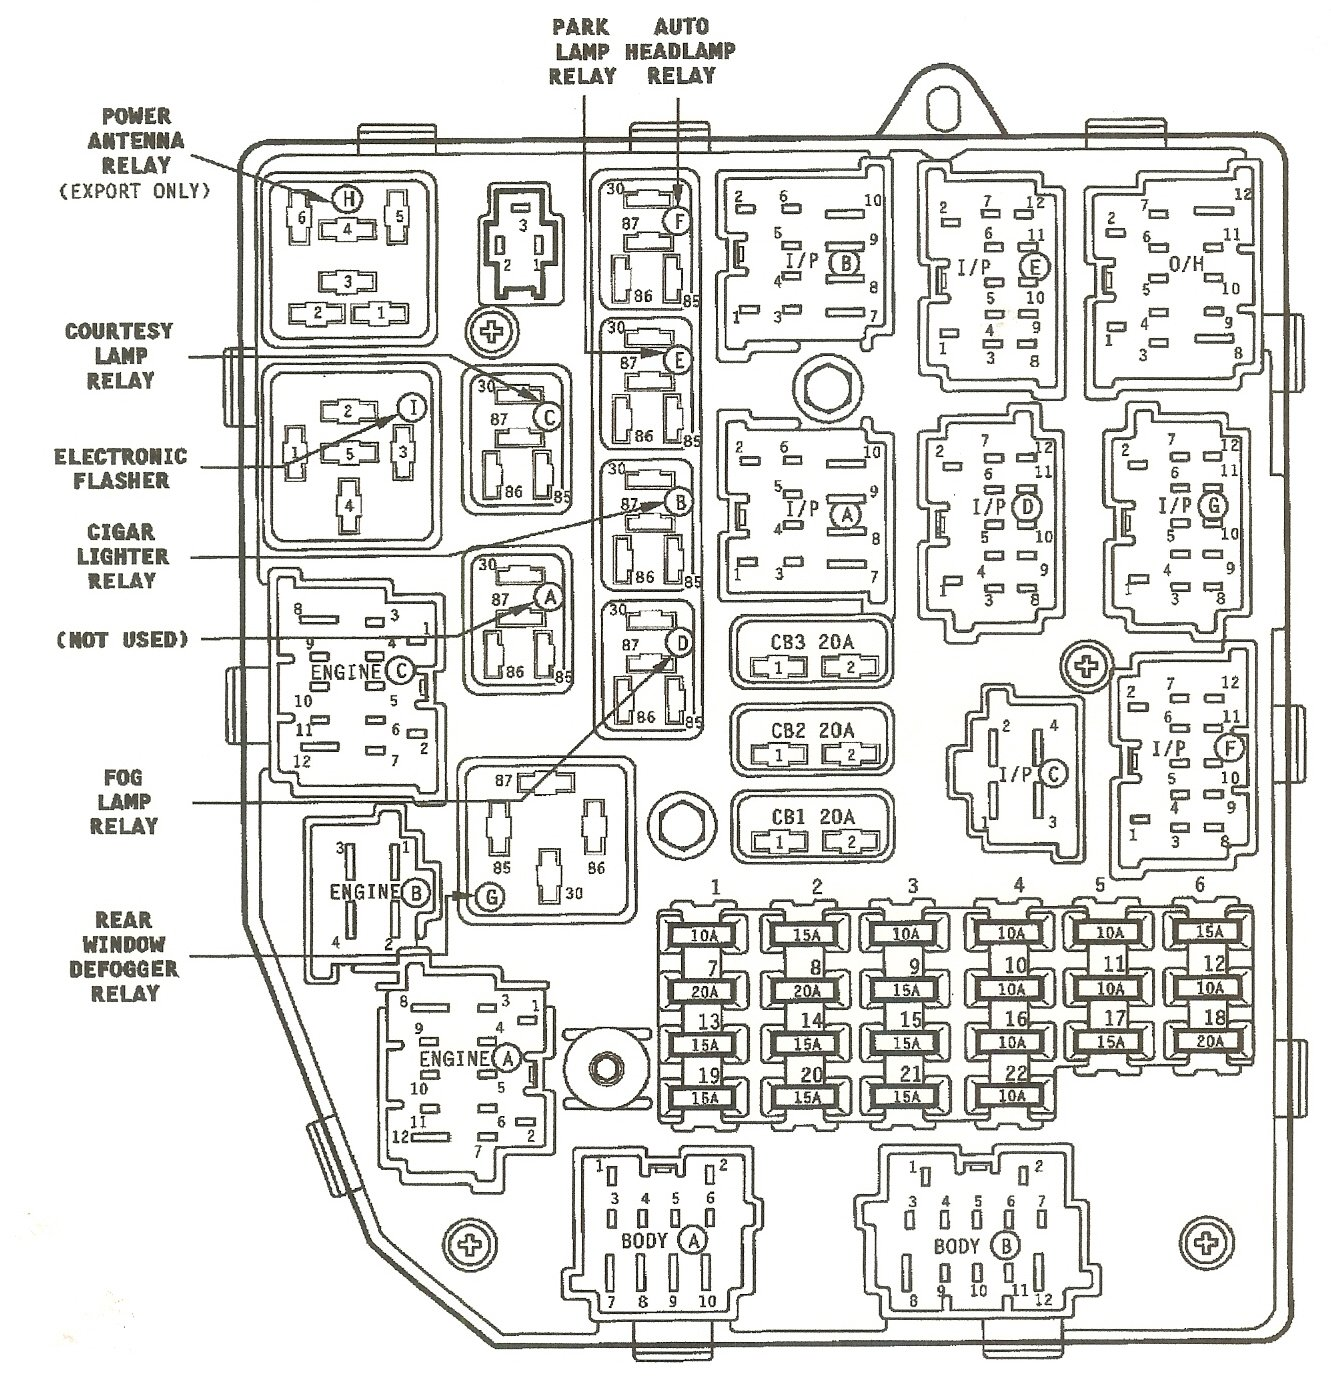 2012 11 13_220706_fuse_box jeep wj fuse diagram wiring diagram data